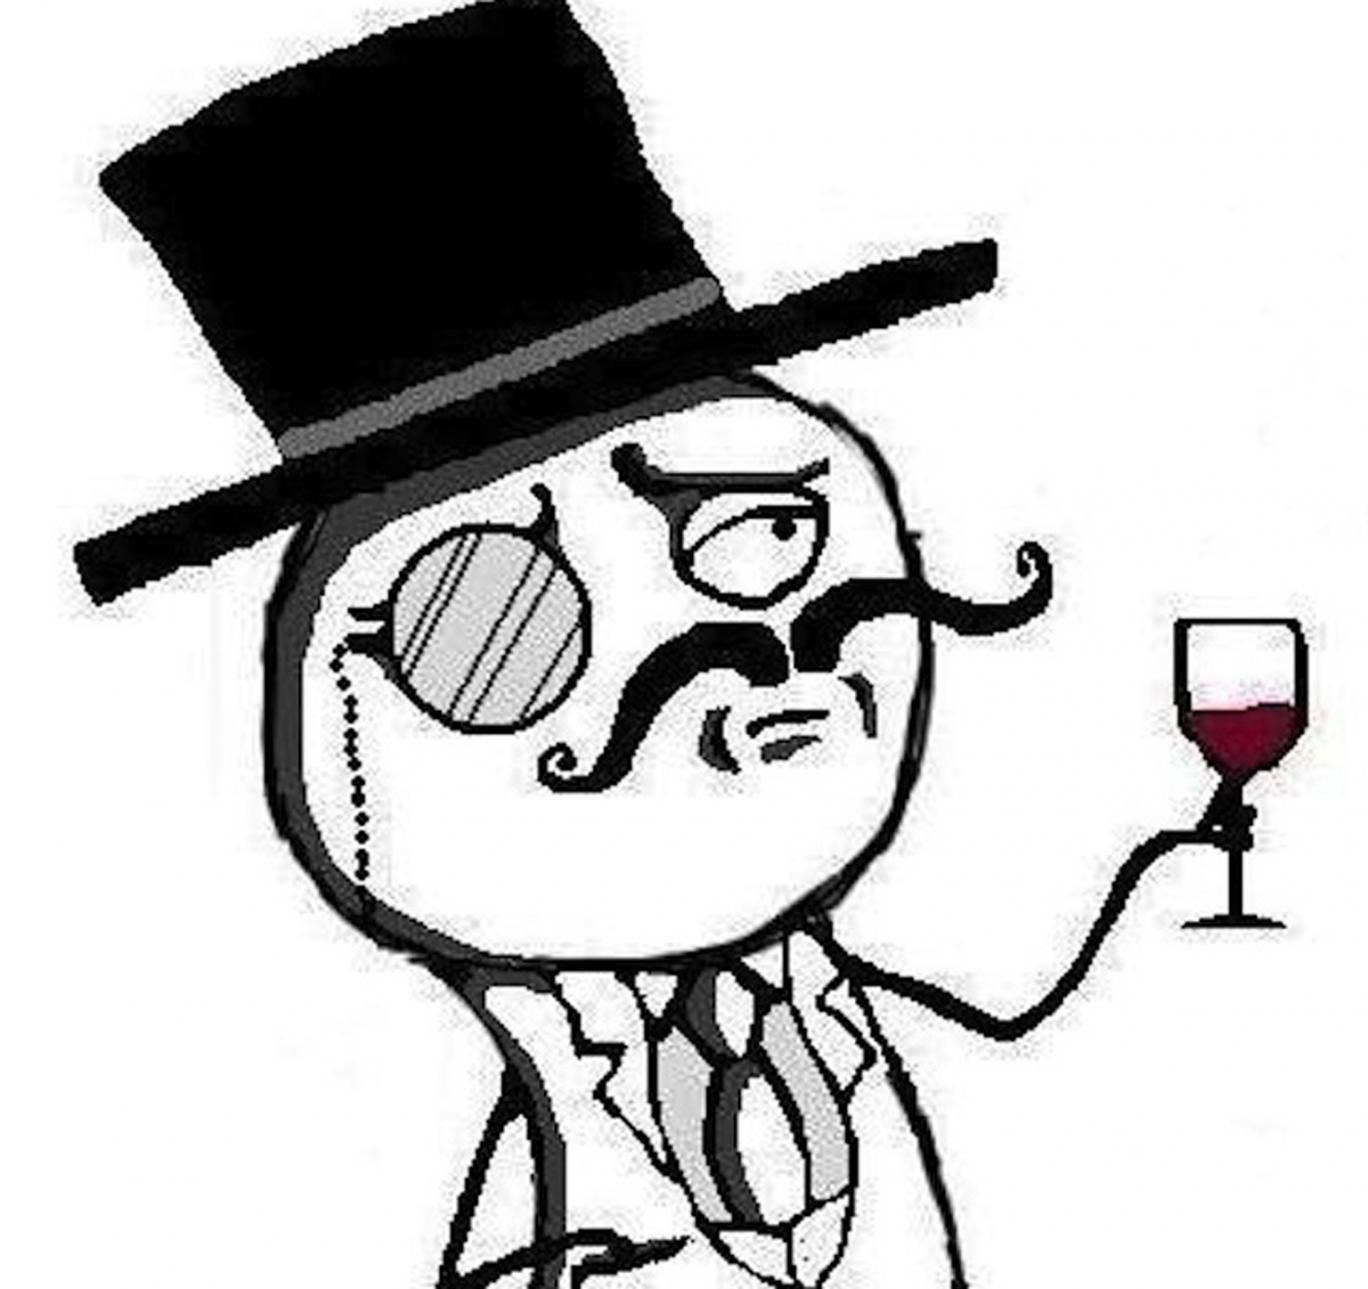 The hacking group LulzSec